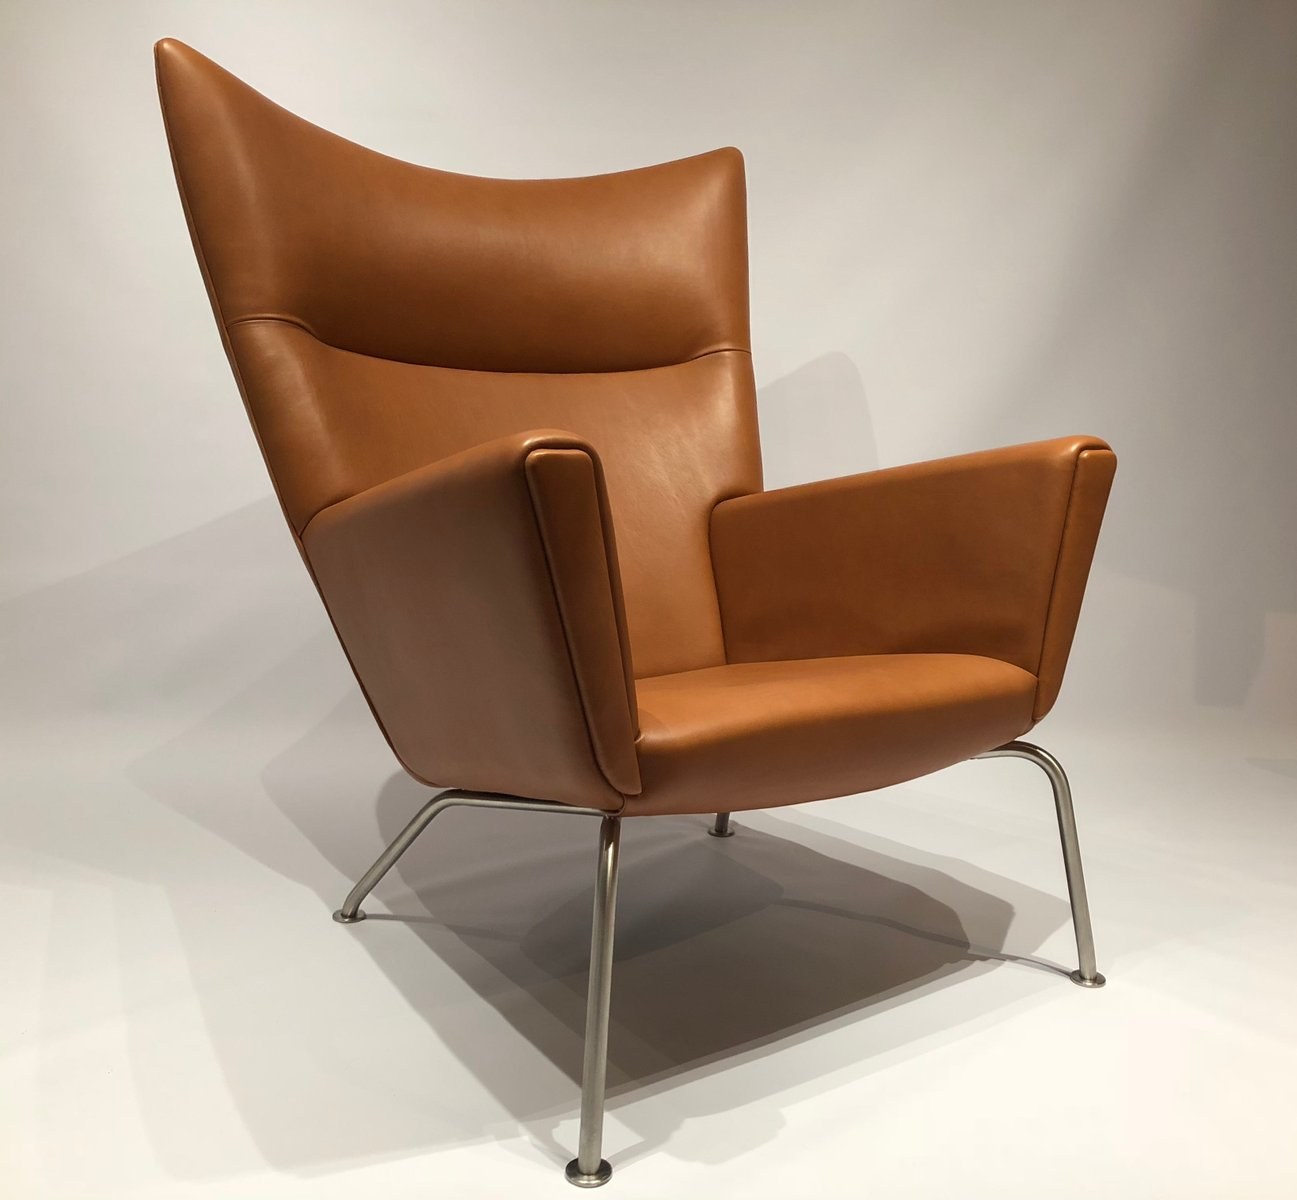 mid century model ch445 wing chair by hans j wegner for carl hansen s n for sale at pamono. Black Bedroom Furniture Sets. Home Design Ideas